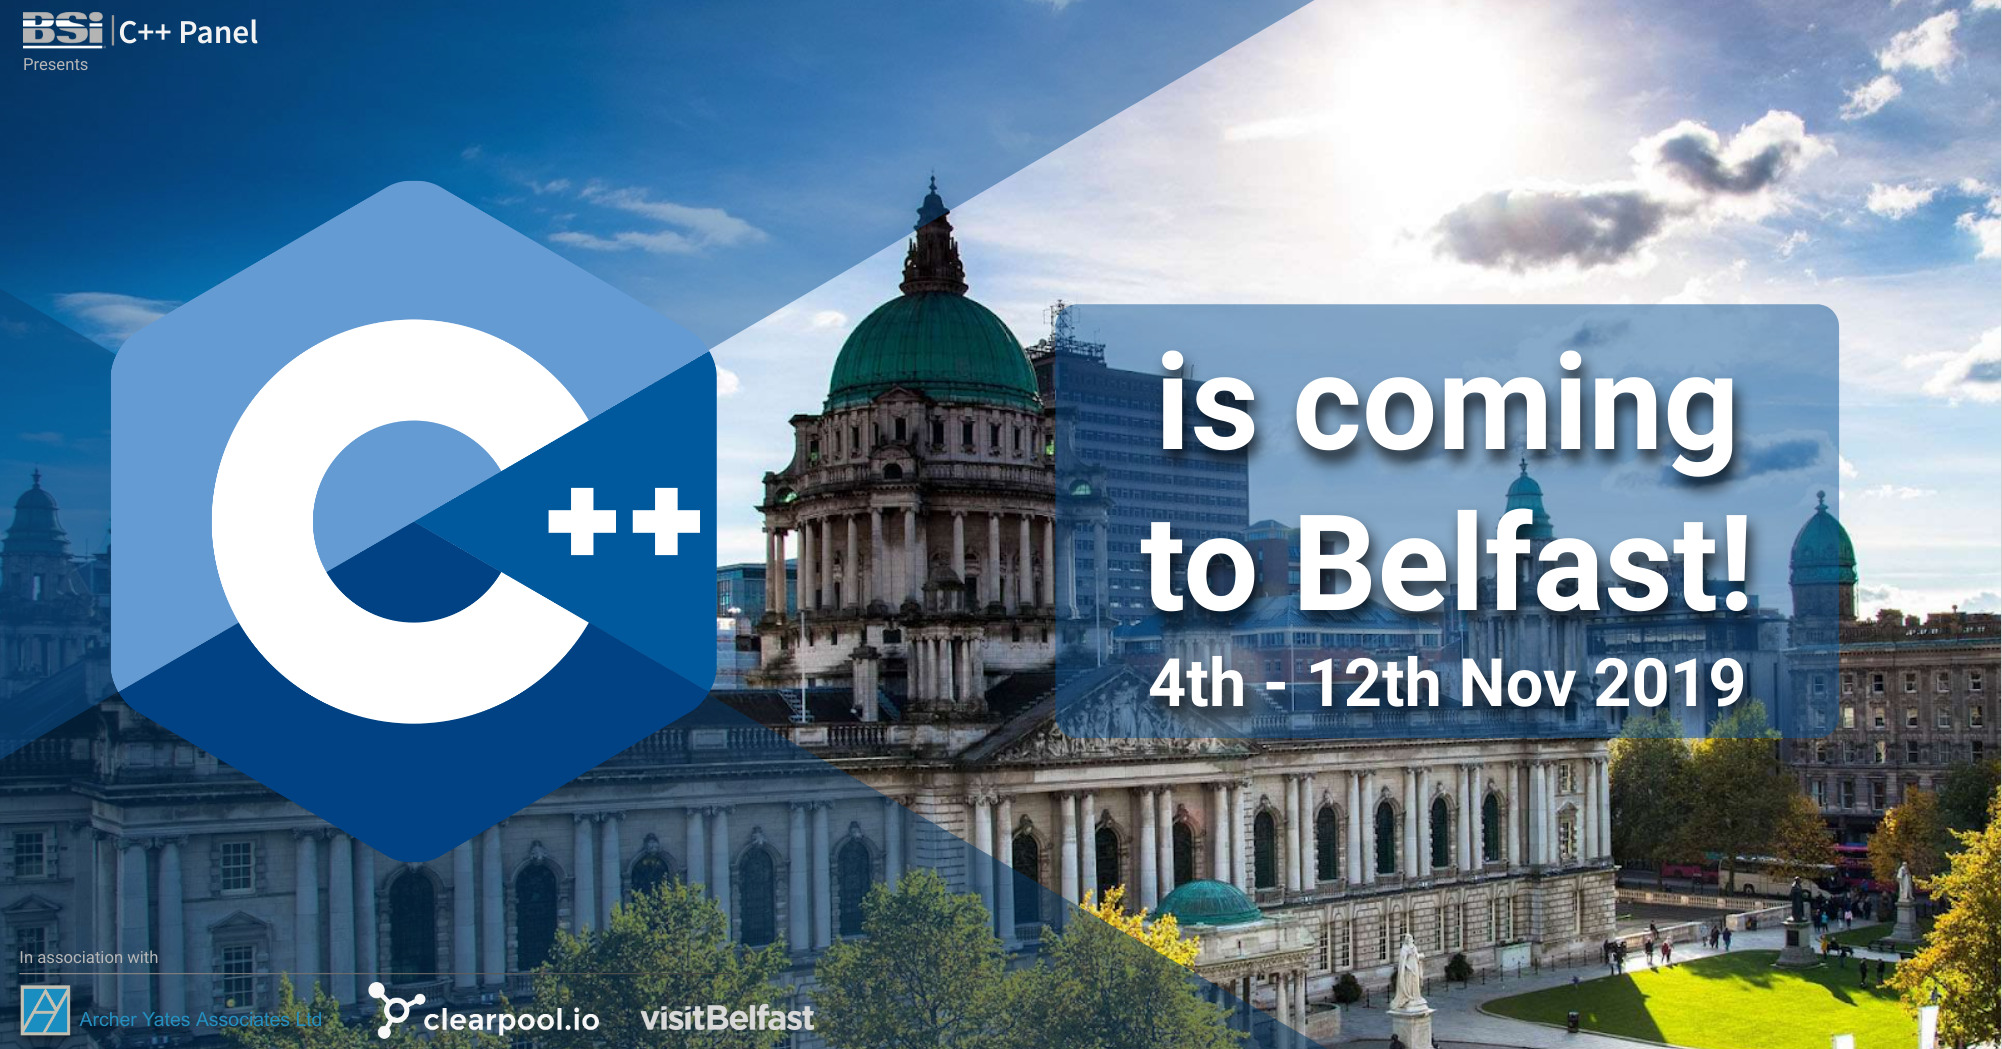 C++ is Coming to Belfast